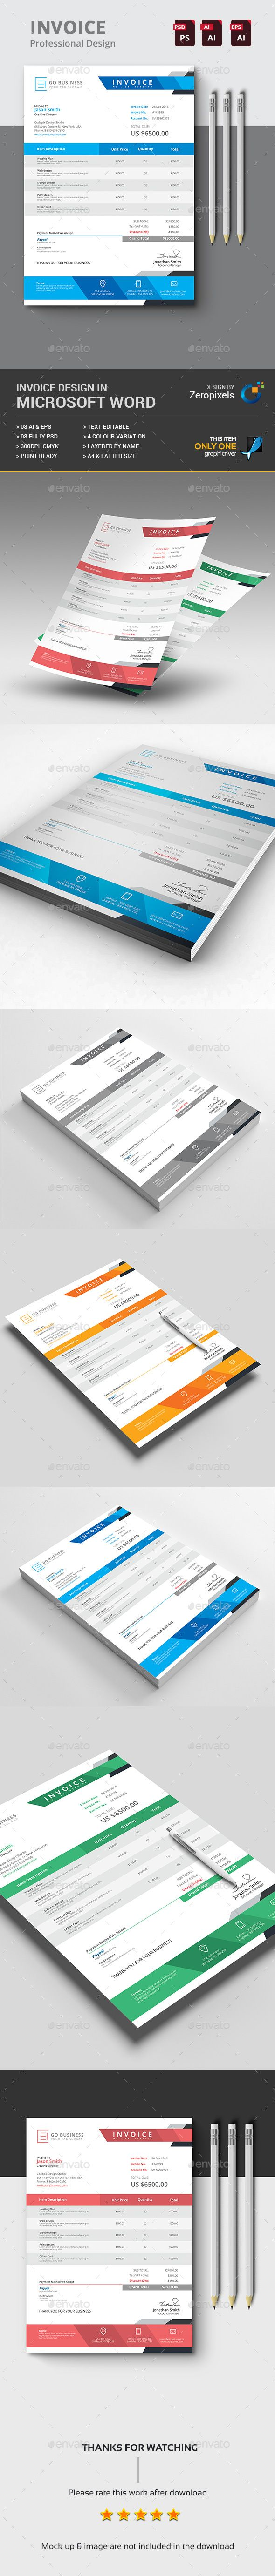 Buy The Invoice by zeropixels on GraphicRiver